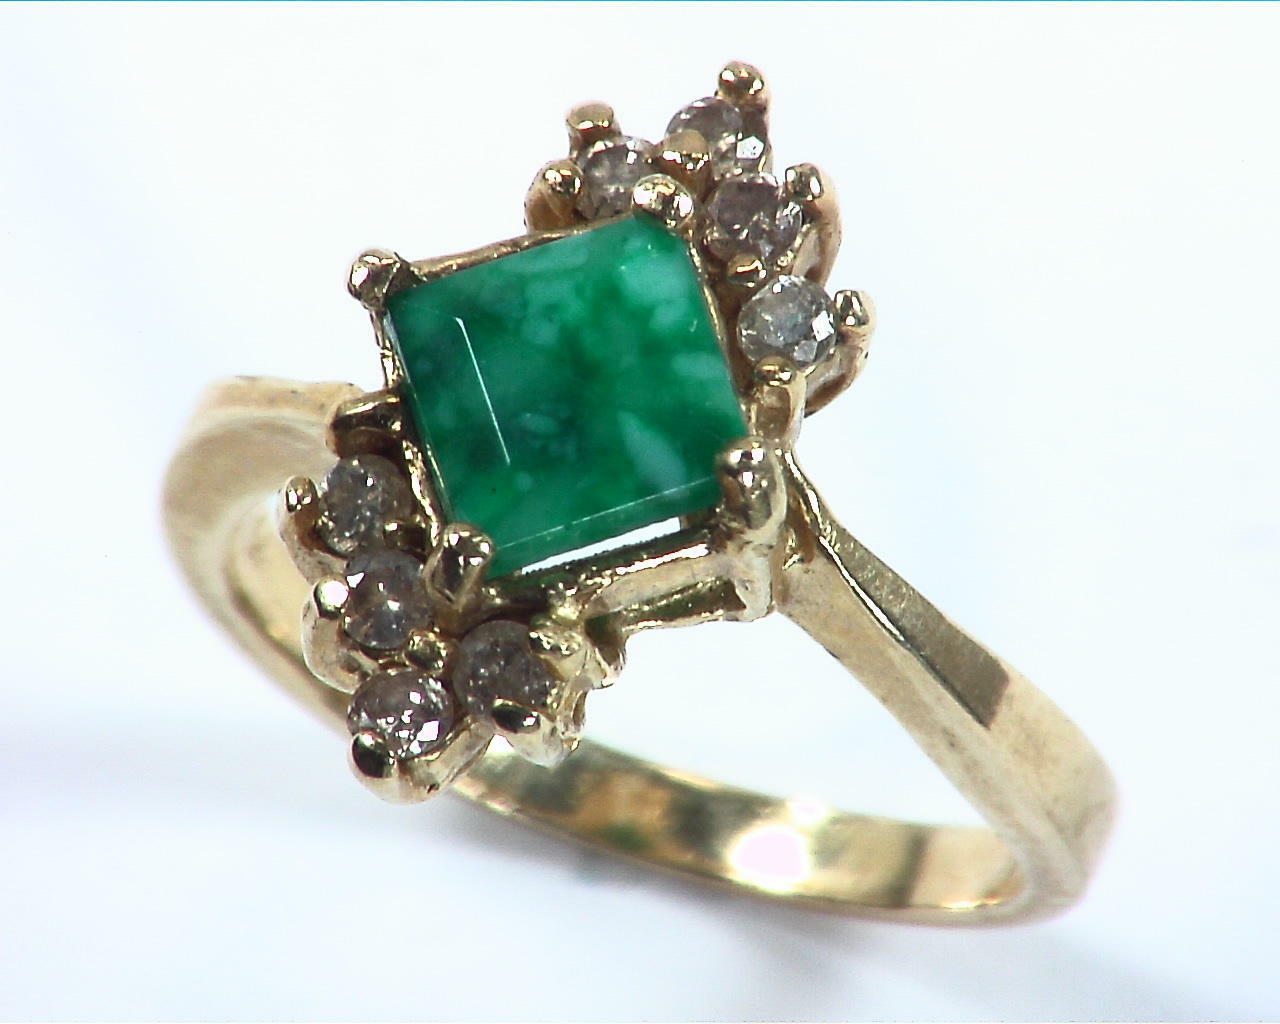 Emerald Natural Genuine Gemstone Gold And Diamond Ring RFK,158 1